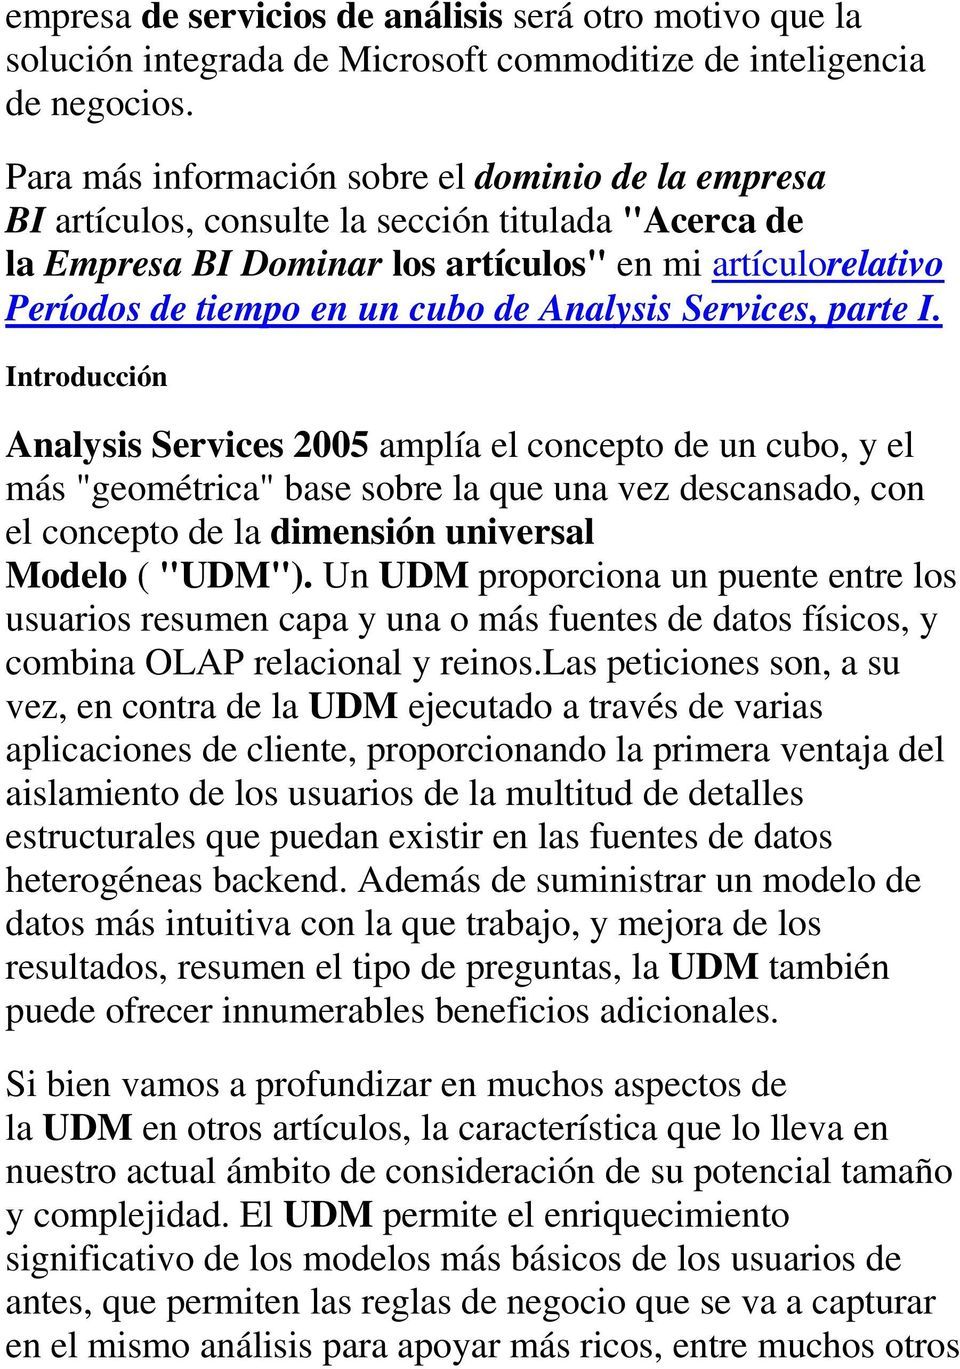 Analysis Services, parte I.